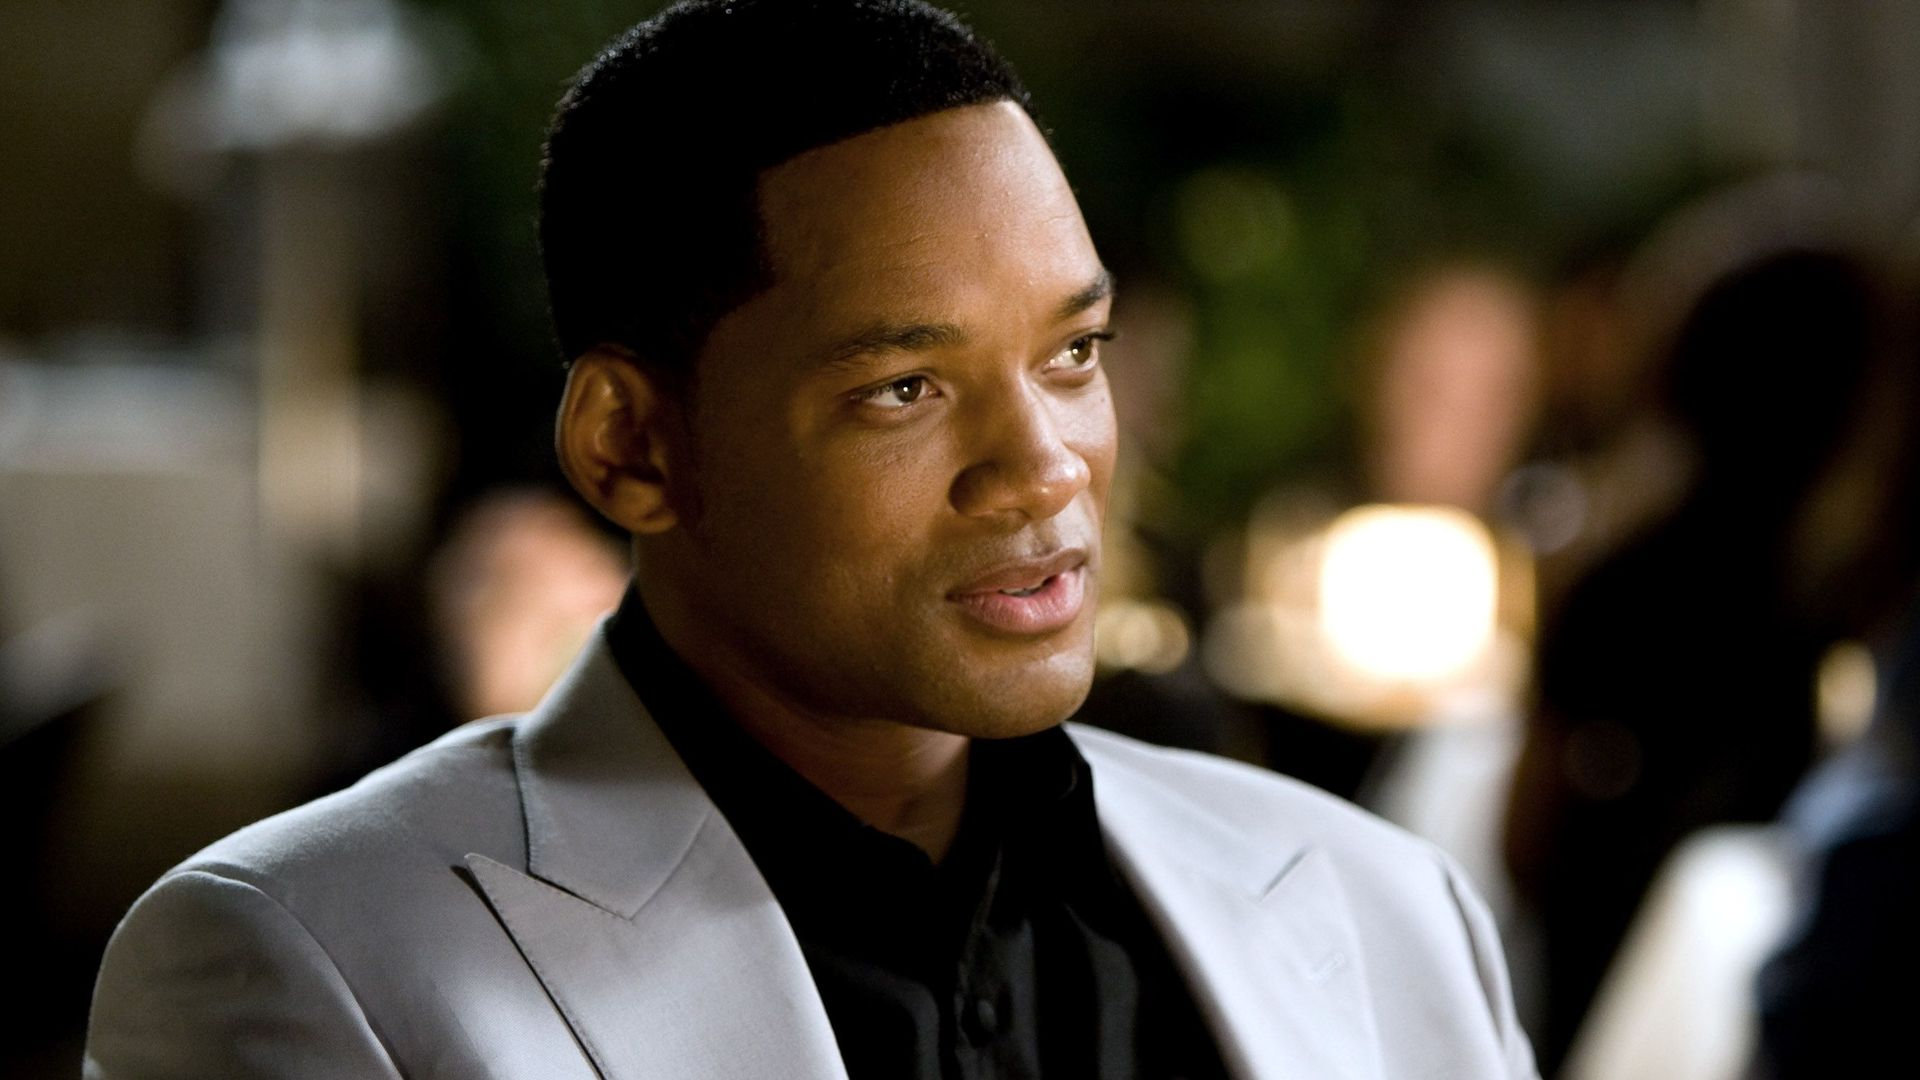 Black History Month Highlights Will Smith